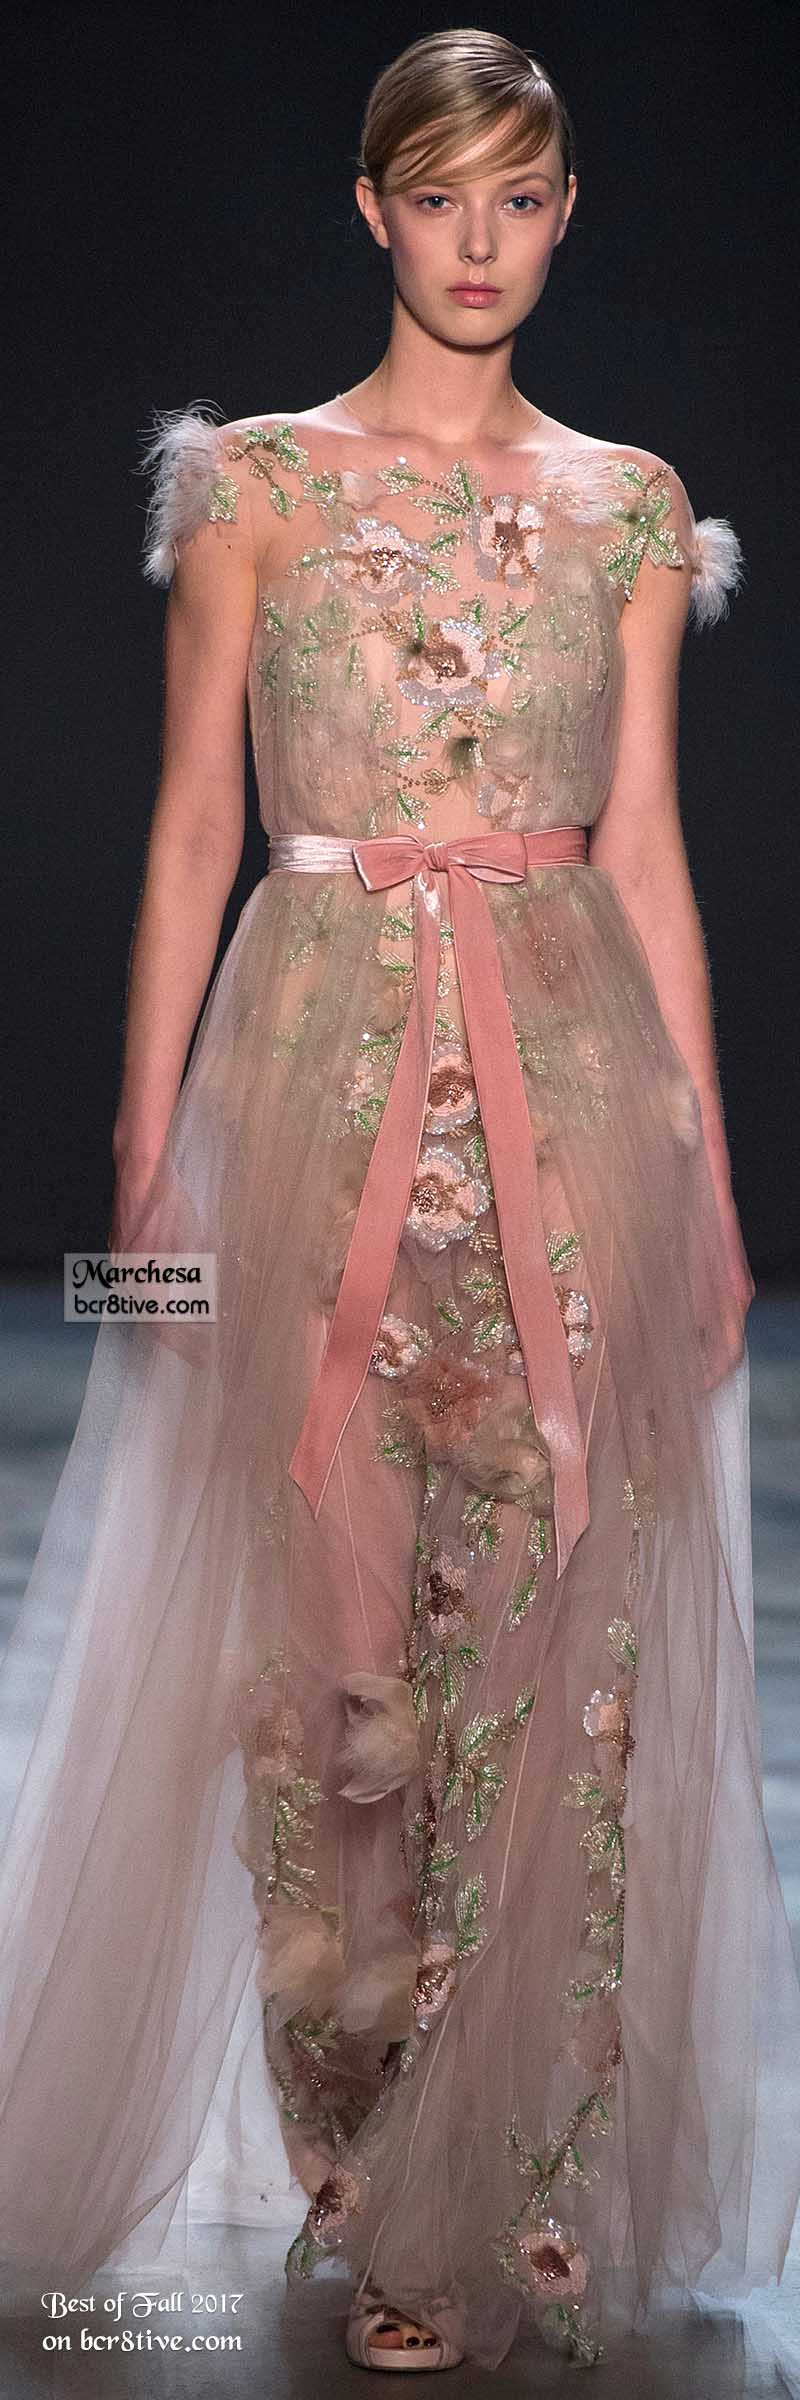 Marchesa Fall 2017